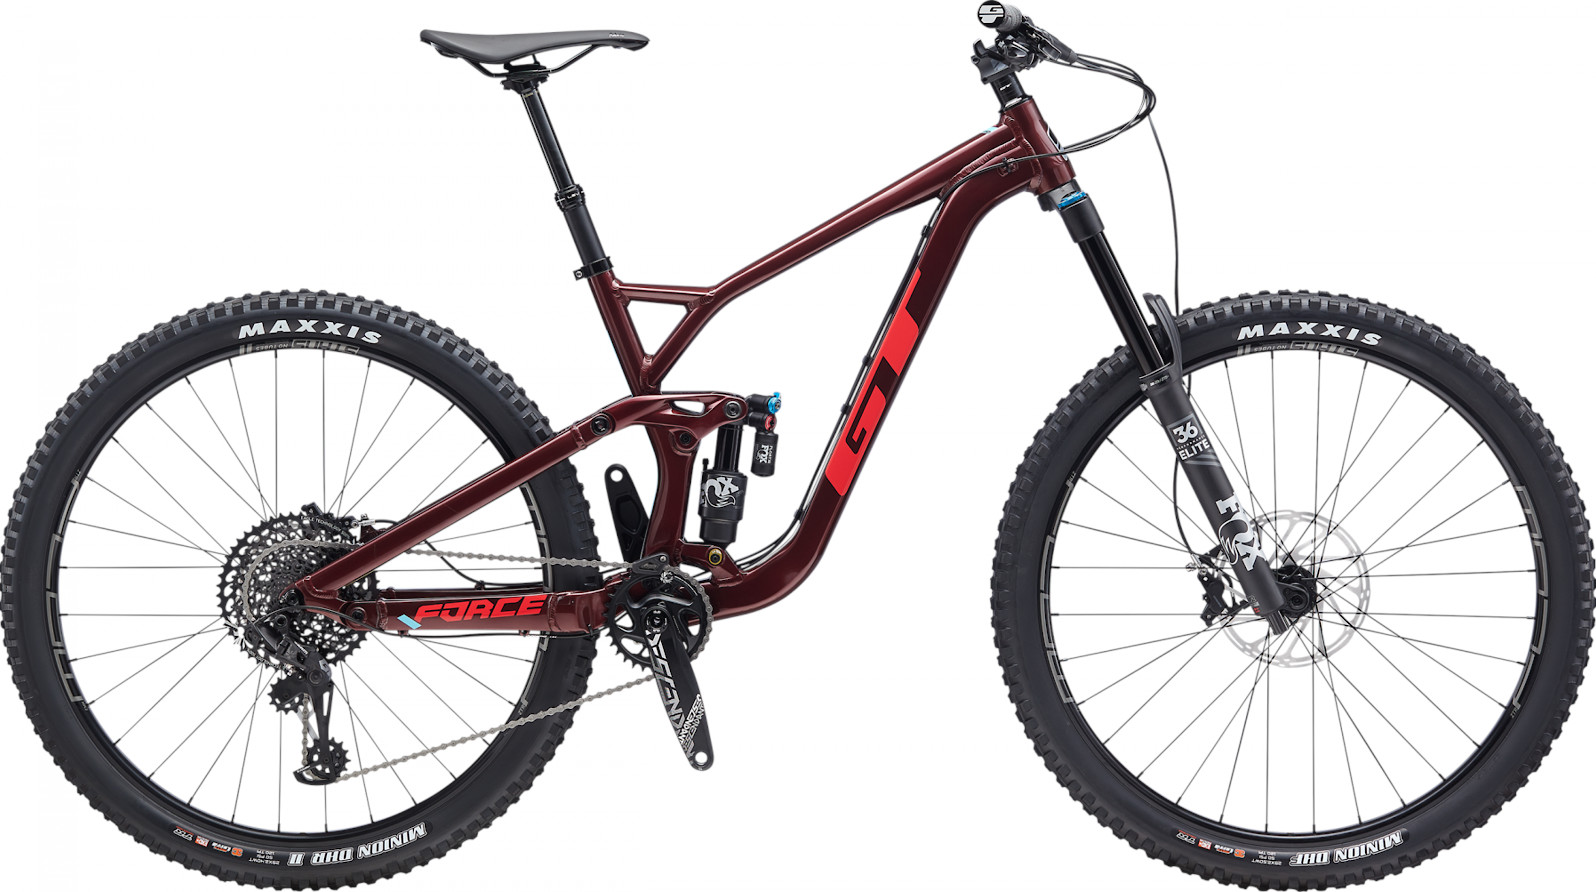 2020 GT Force 29 Pro pictured in burgundy